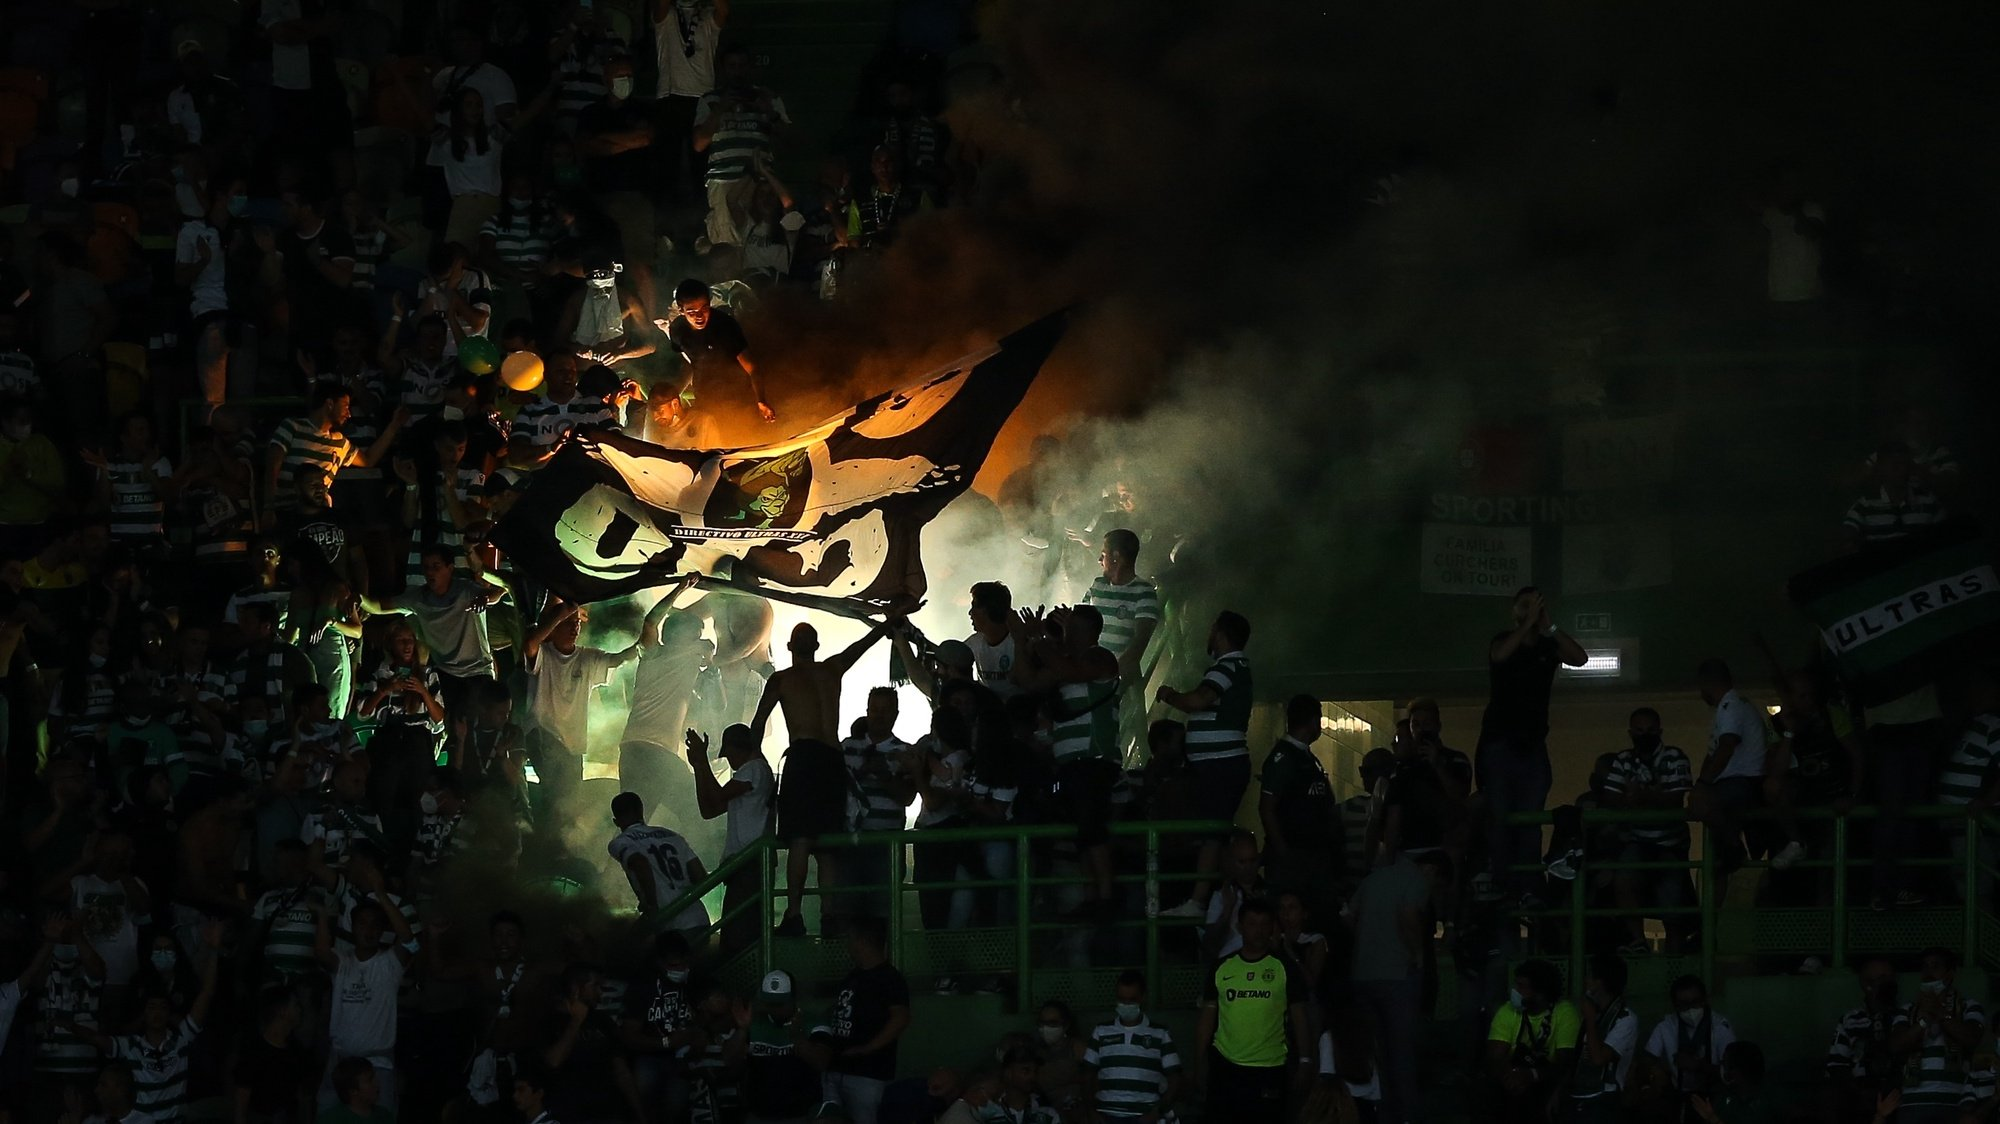 epa09462792 Sporting's fans react during the Portuguese First League soccer match between Sporting and FC Porto at Jose de Alvalade Stadium in Lisbon, Portugal, 11 September 2021.  EPA/RODRIGO ANTUNES